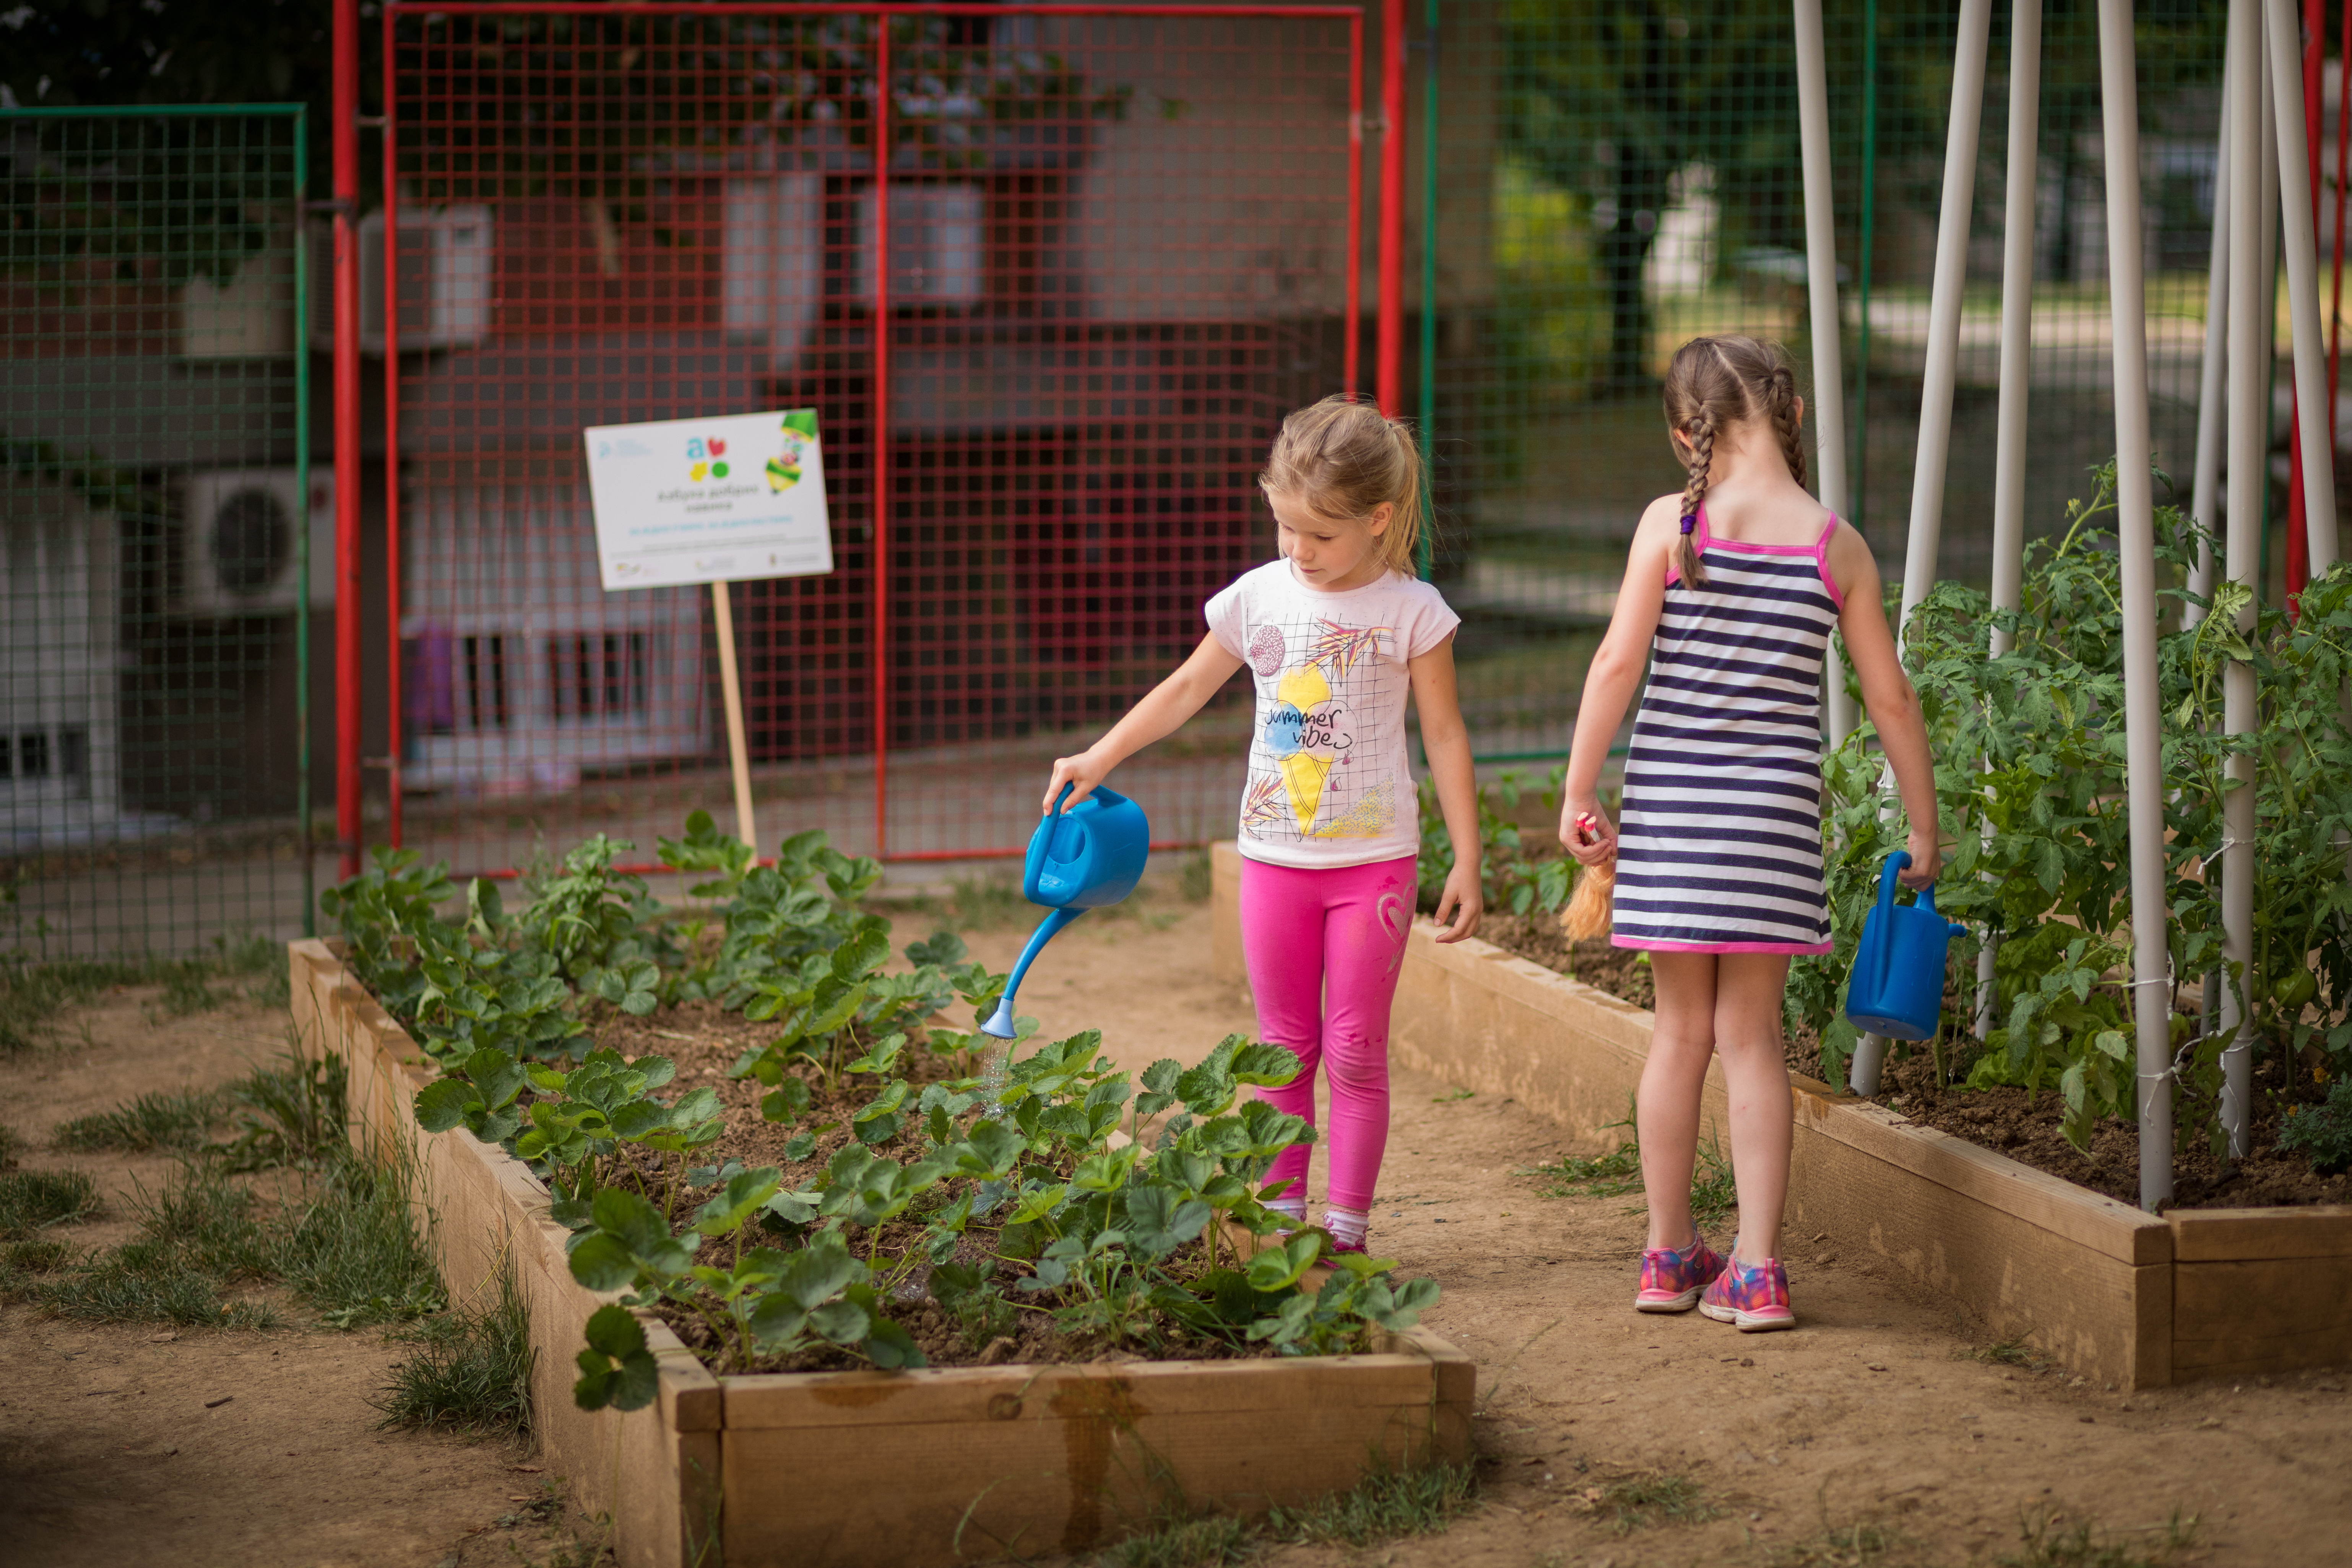 The reasons for including children in gardening are numerous